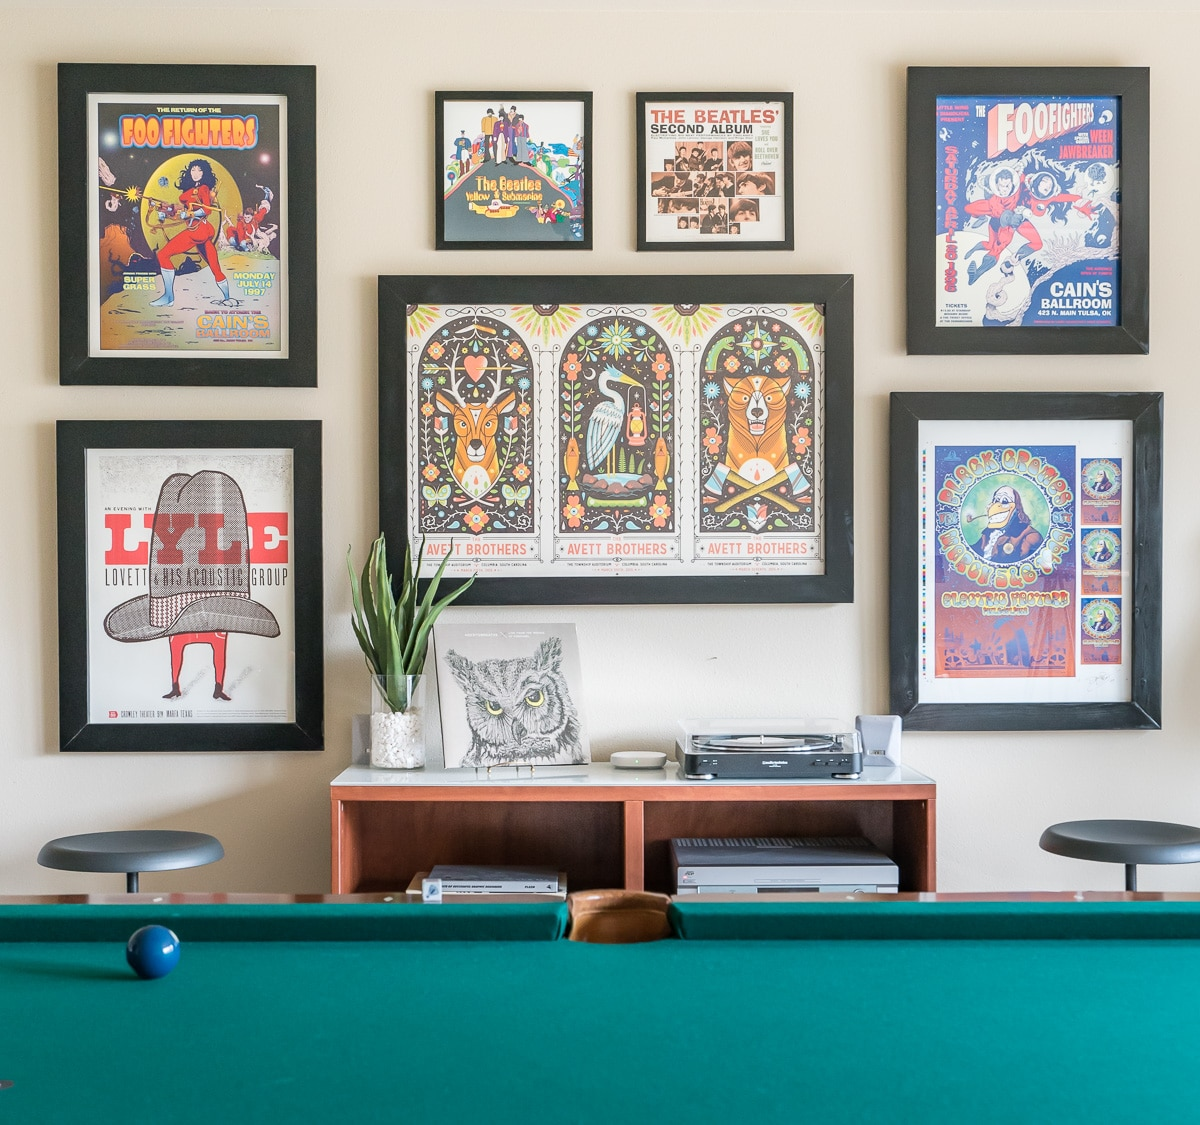 Colorful concert poster gallery wall in in game room with record player and pool table